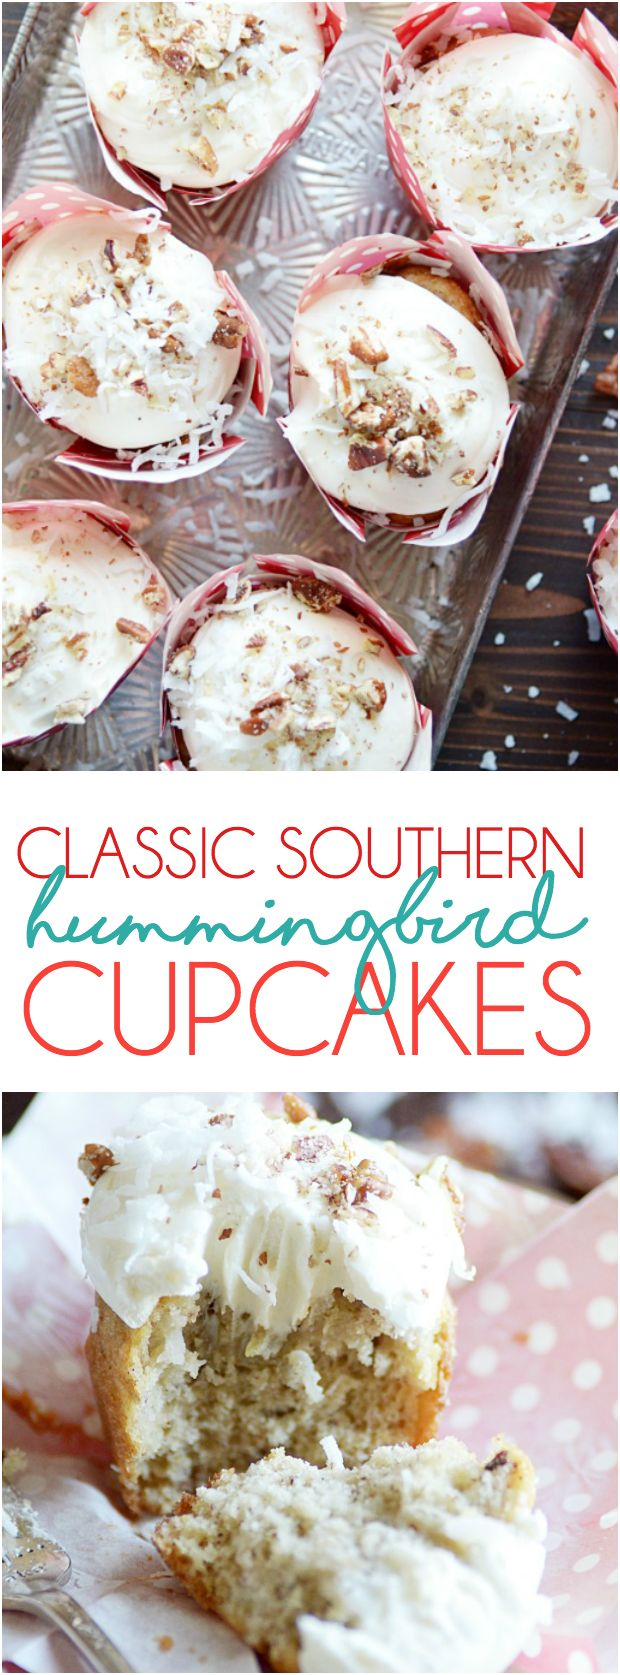 Classic Southern Hummingbird Cupcakes | Something Swanky | This Southern classic is banana bread and cupcake all rolled into one! A super moist banana cupcake with crushed pineapple, coconut, and pecans folded into the batter topped with an irresistibly dreamy cream cheese frosting.